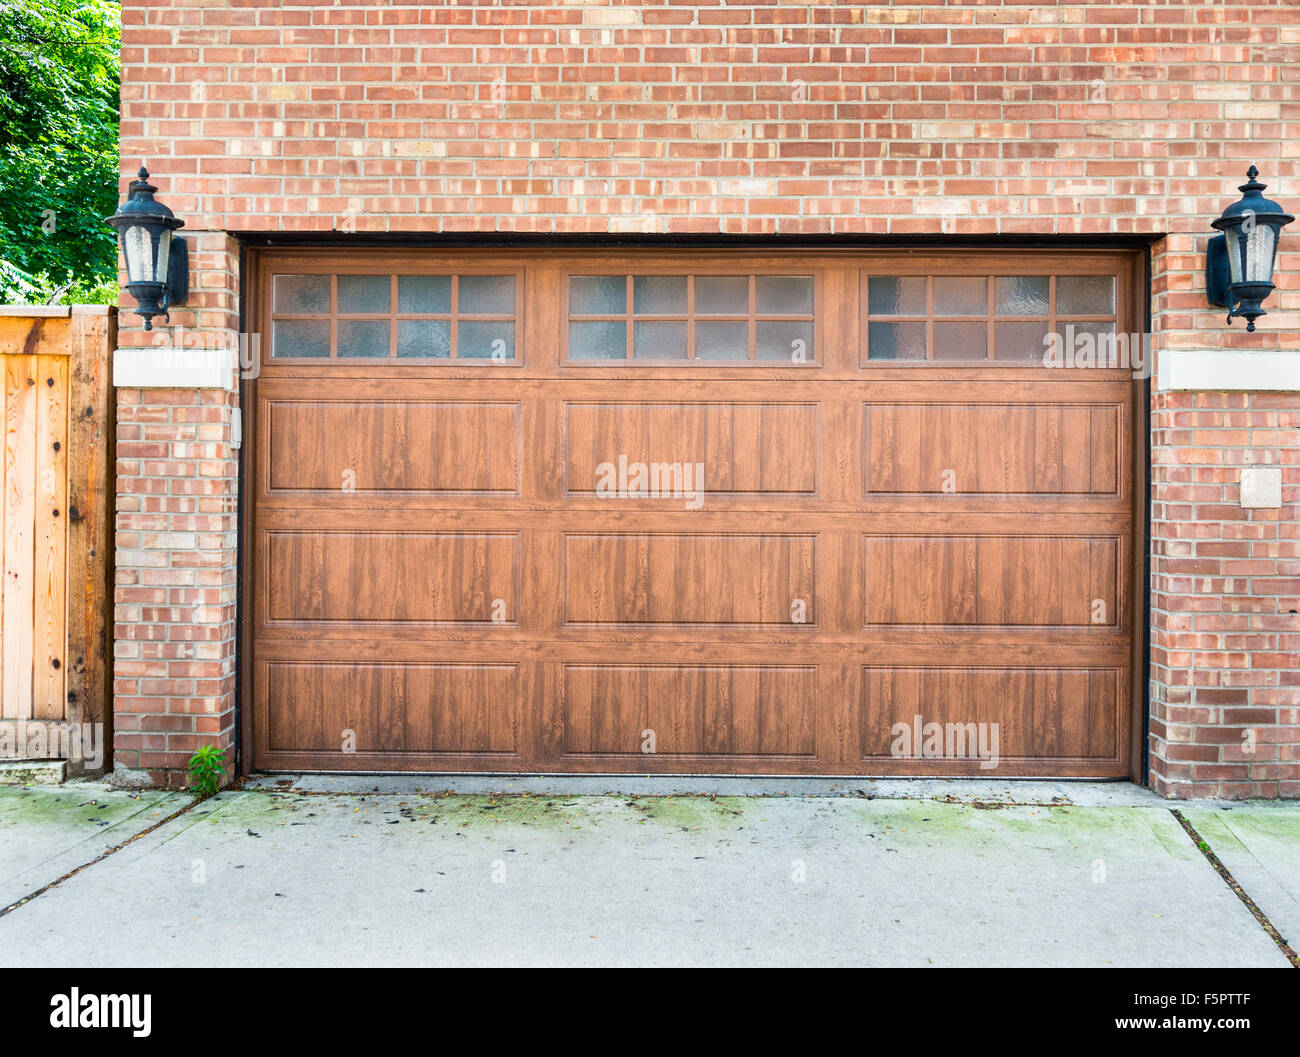 High End Garage Door On A Brick House Of A Upscale Neighborhood